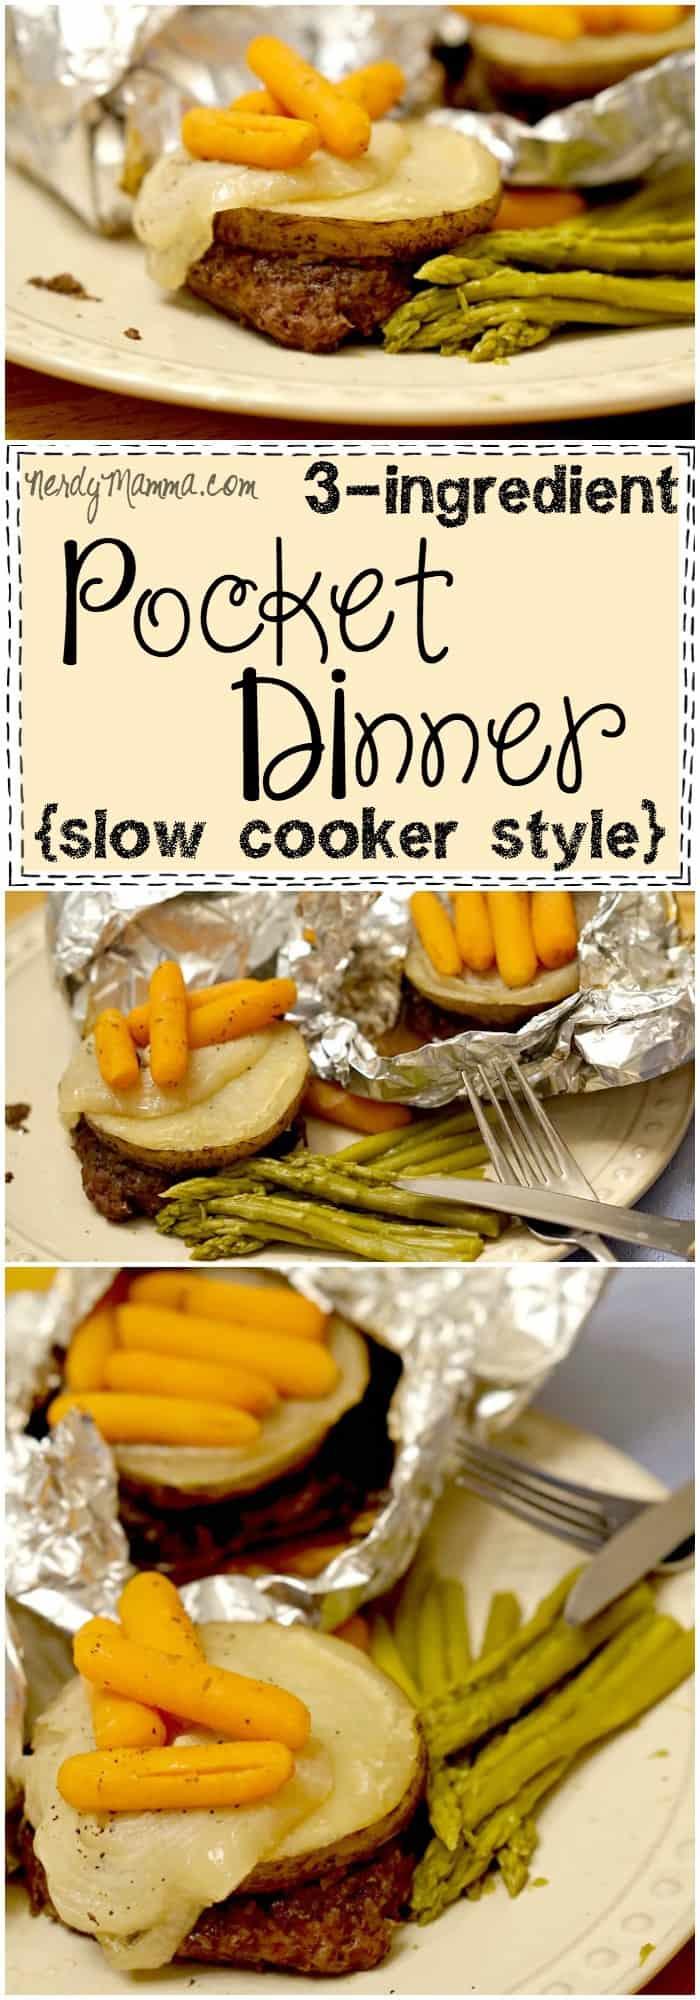 This recipe for 3-ingredient pocket dinners in the slow cooker is so easy. Gluten-free, dairy-free and fast, they're the best weeknight dinner. Love it!